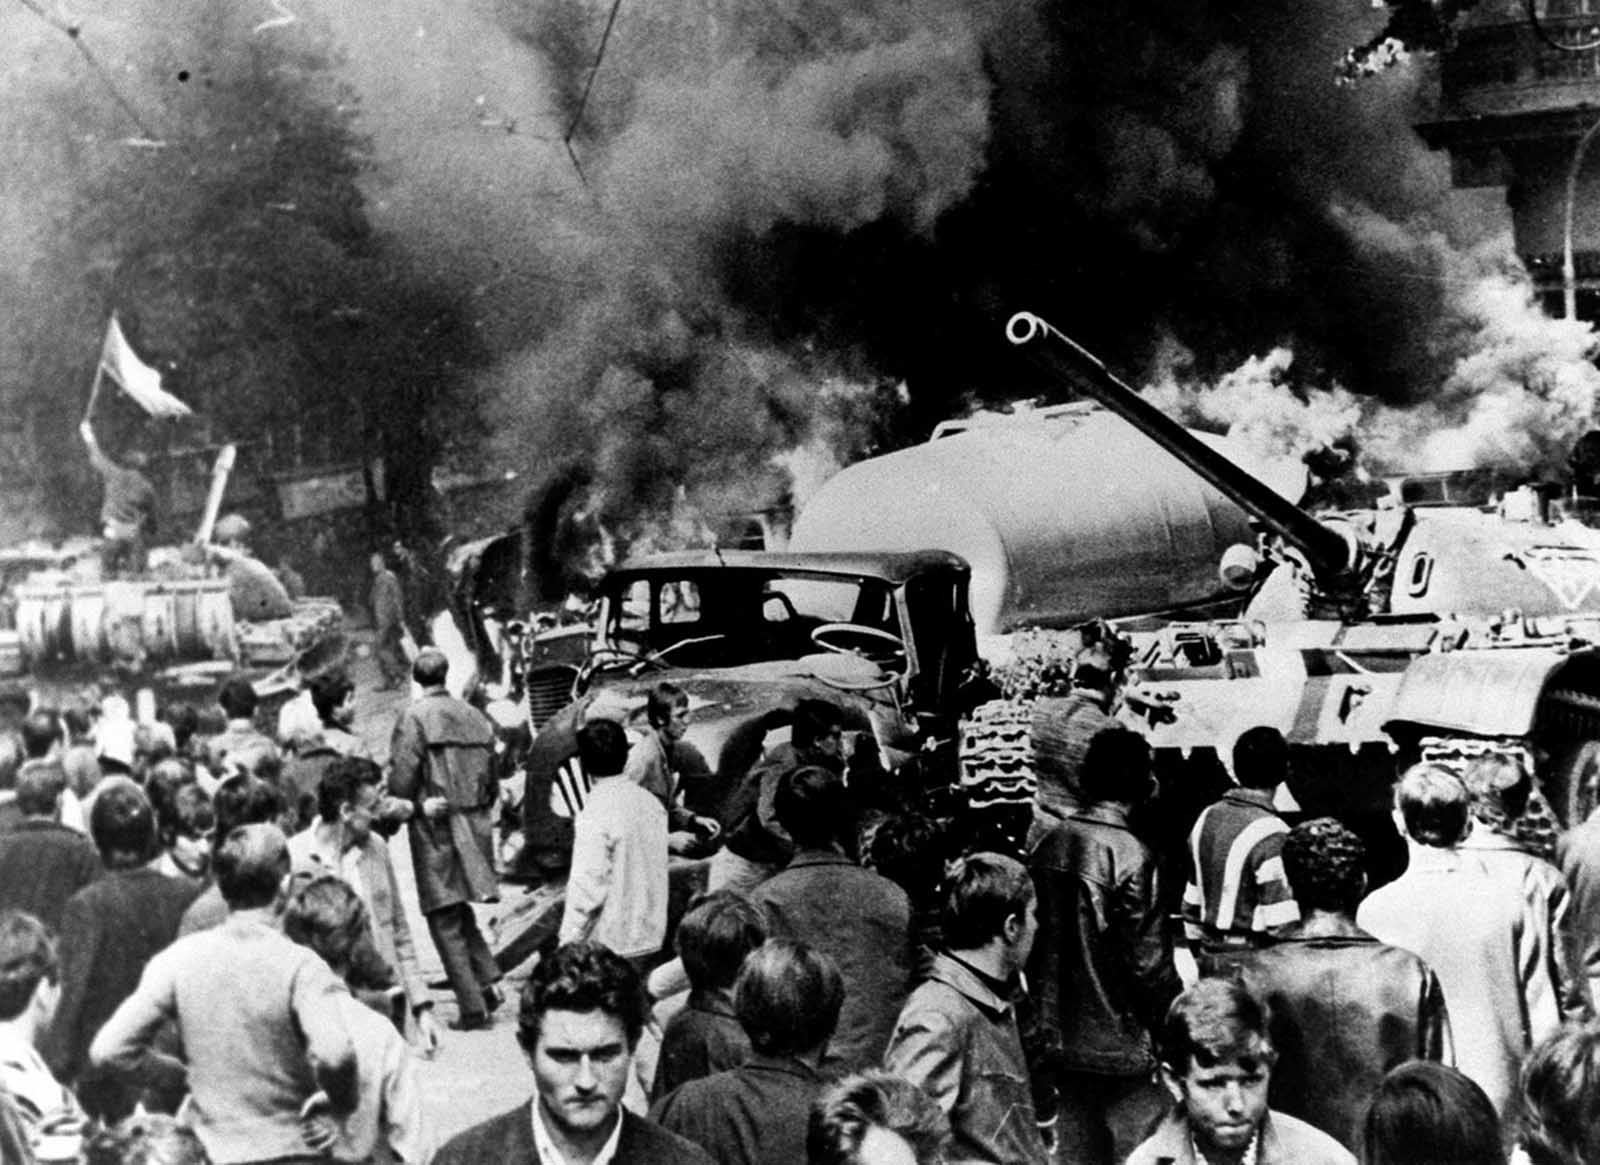 A Soviet tank, burning vehicles, and sullen citizens are seen in Prague on August 21, 1968, as Soviet troops entered the Czechoslovakian capital.